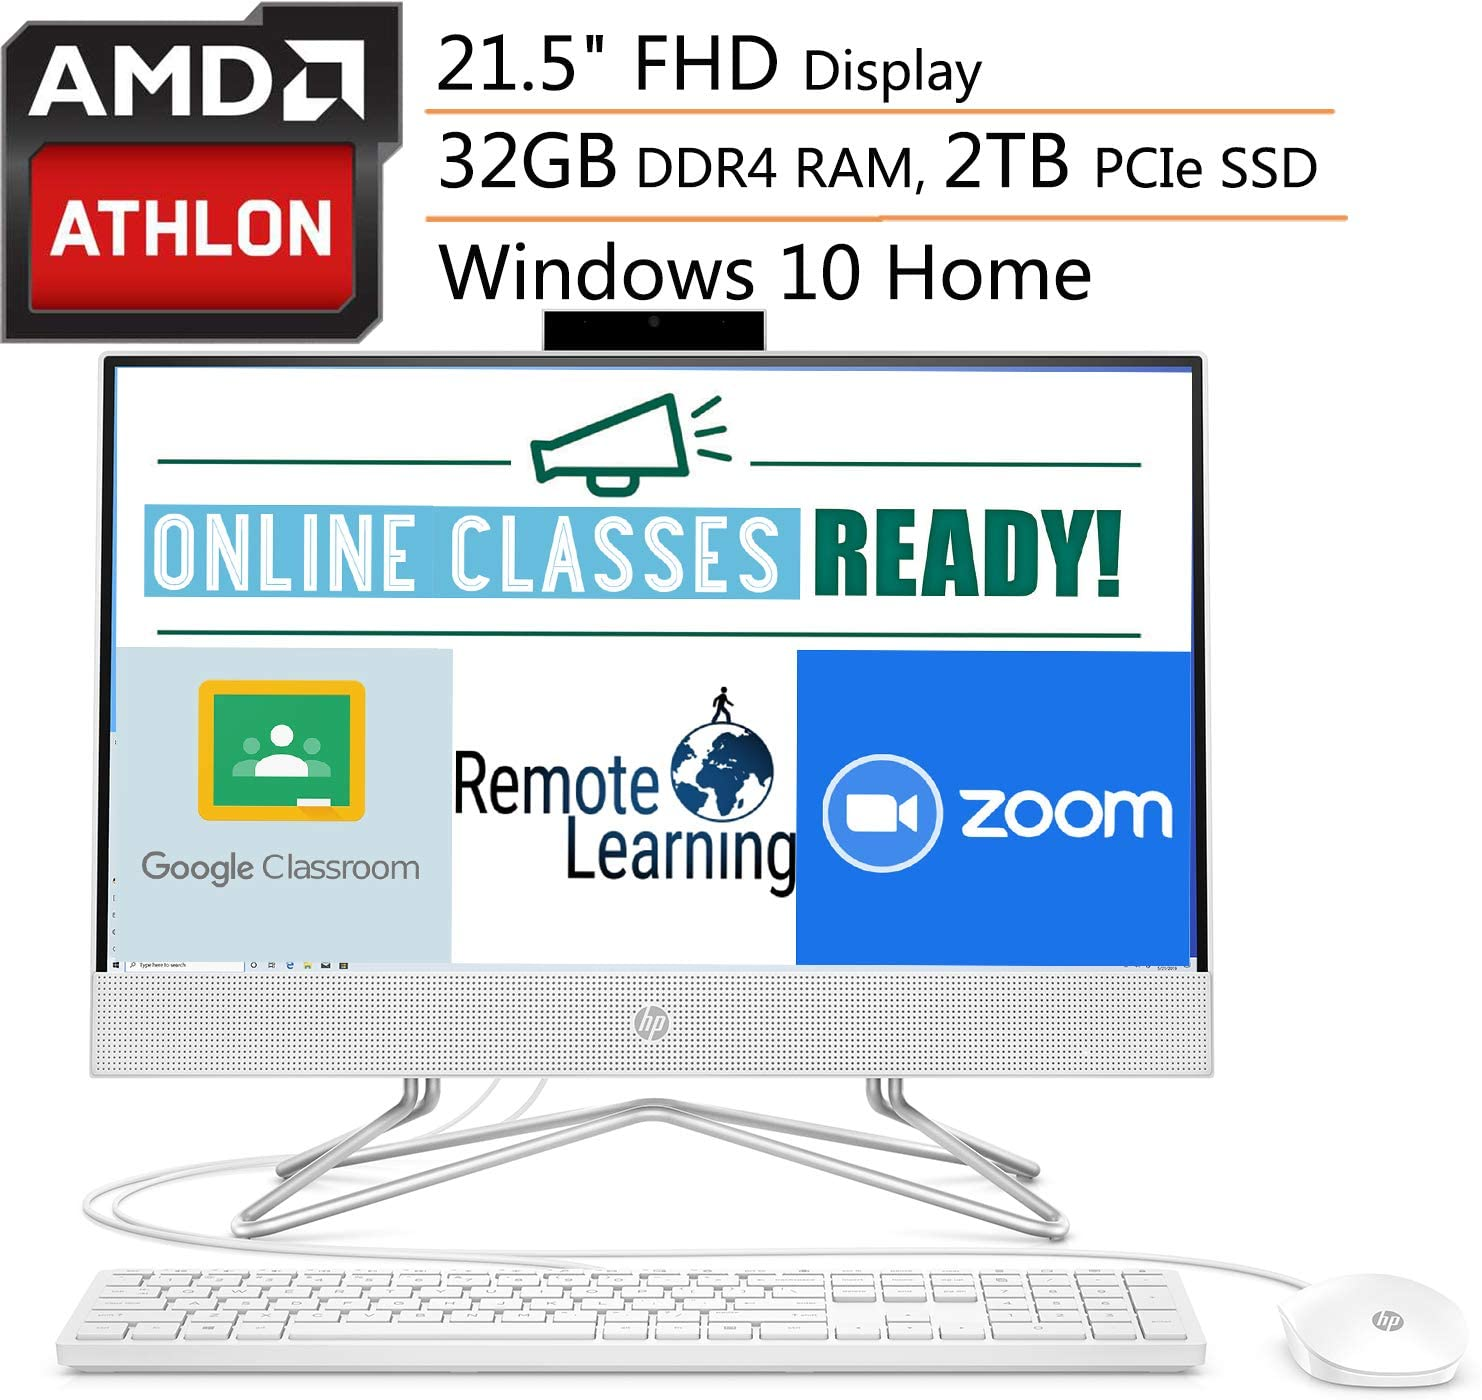 HP 22 AIO 21.5 FHD All-in-One Desktop Computer, AMD Athlon 3050U Up to 3.2GHz (Beats i3-7130U), 32GB DDR4 RAM, 2TB PCIe SSD, DVDRW, 802.11AC WiFi, Online Class Ready, Windows 10, iPuzzle Mousepad